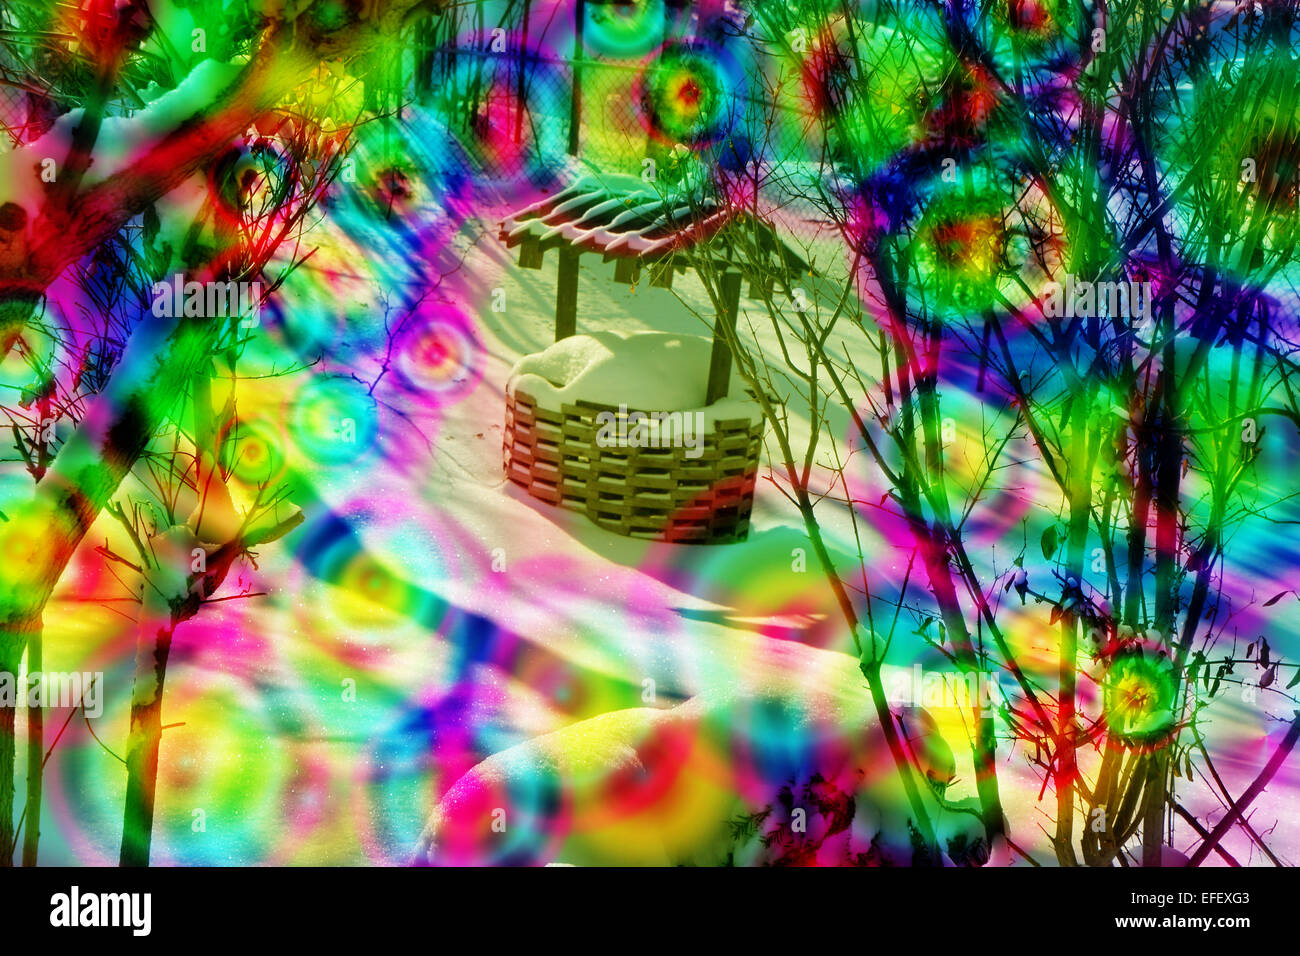 a wishing well , circles of color, trees in back,magical,money,dream,dreams - Stock Image